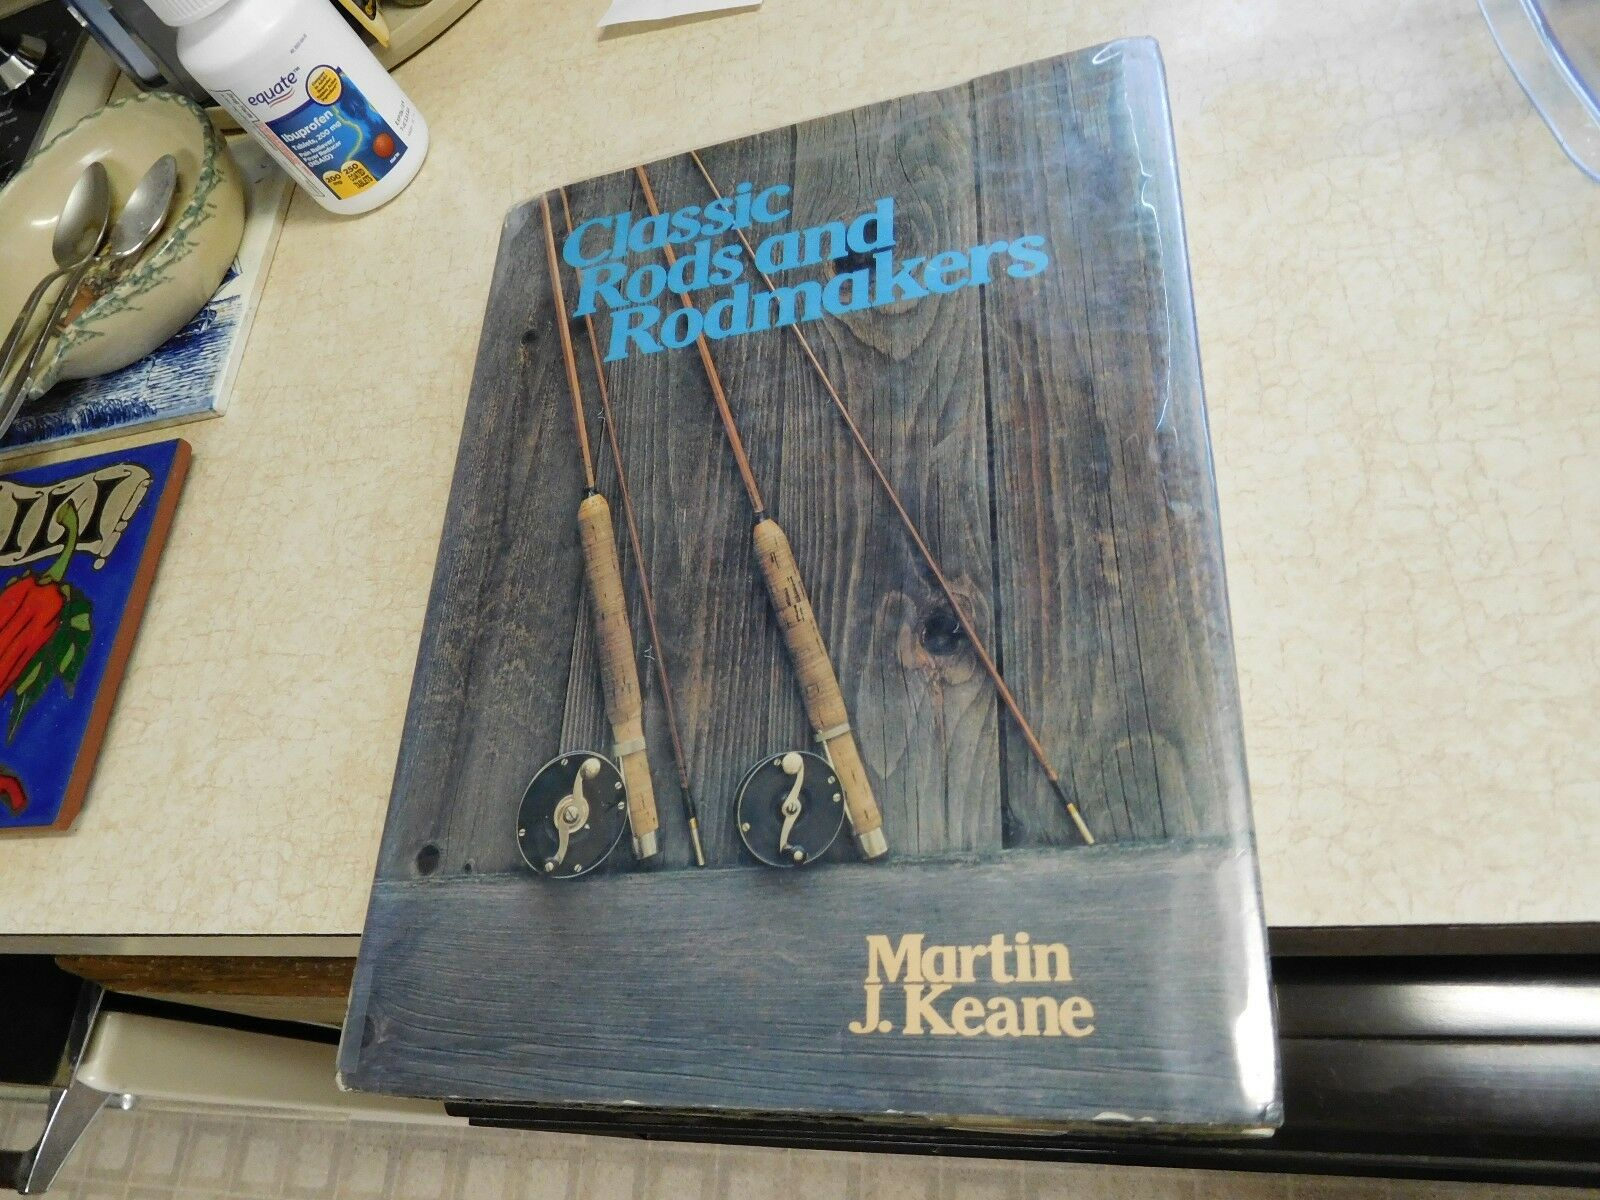 Classic Rods and Rodmakers, by Martin J. Keane, 1st. ed. Book, 1976